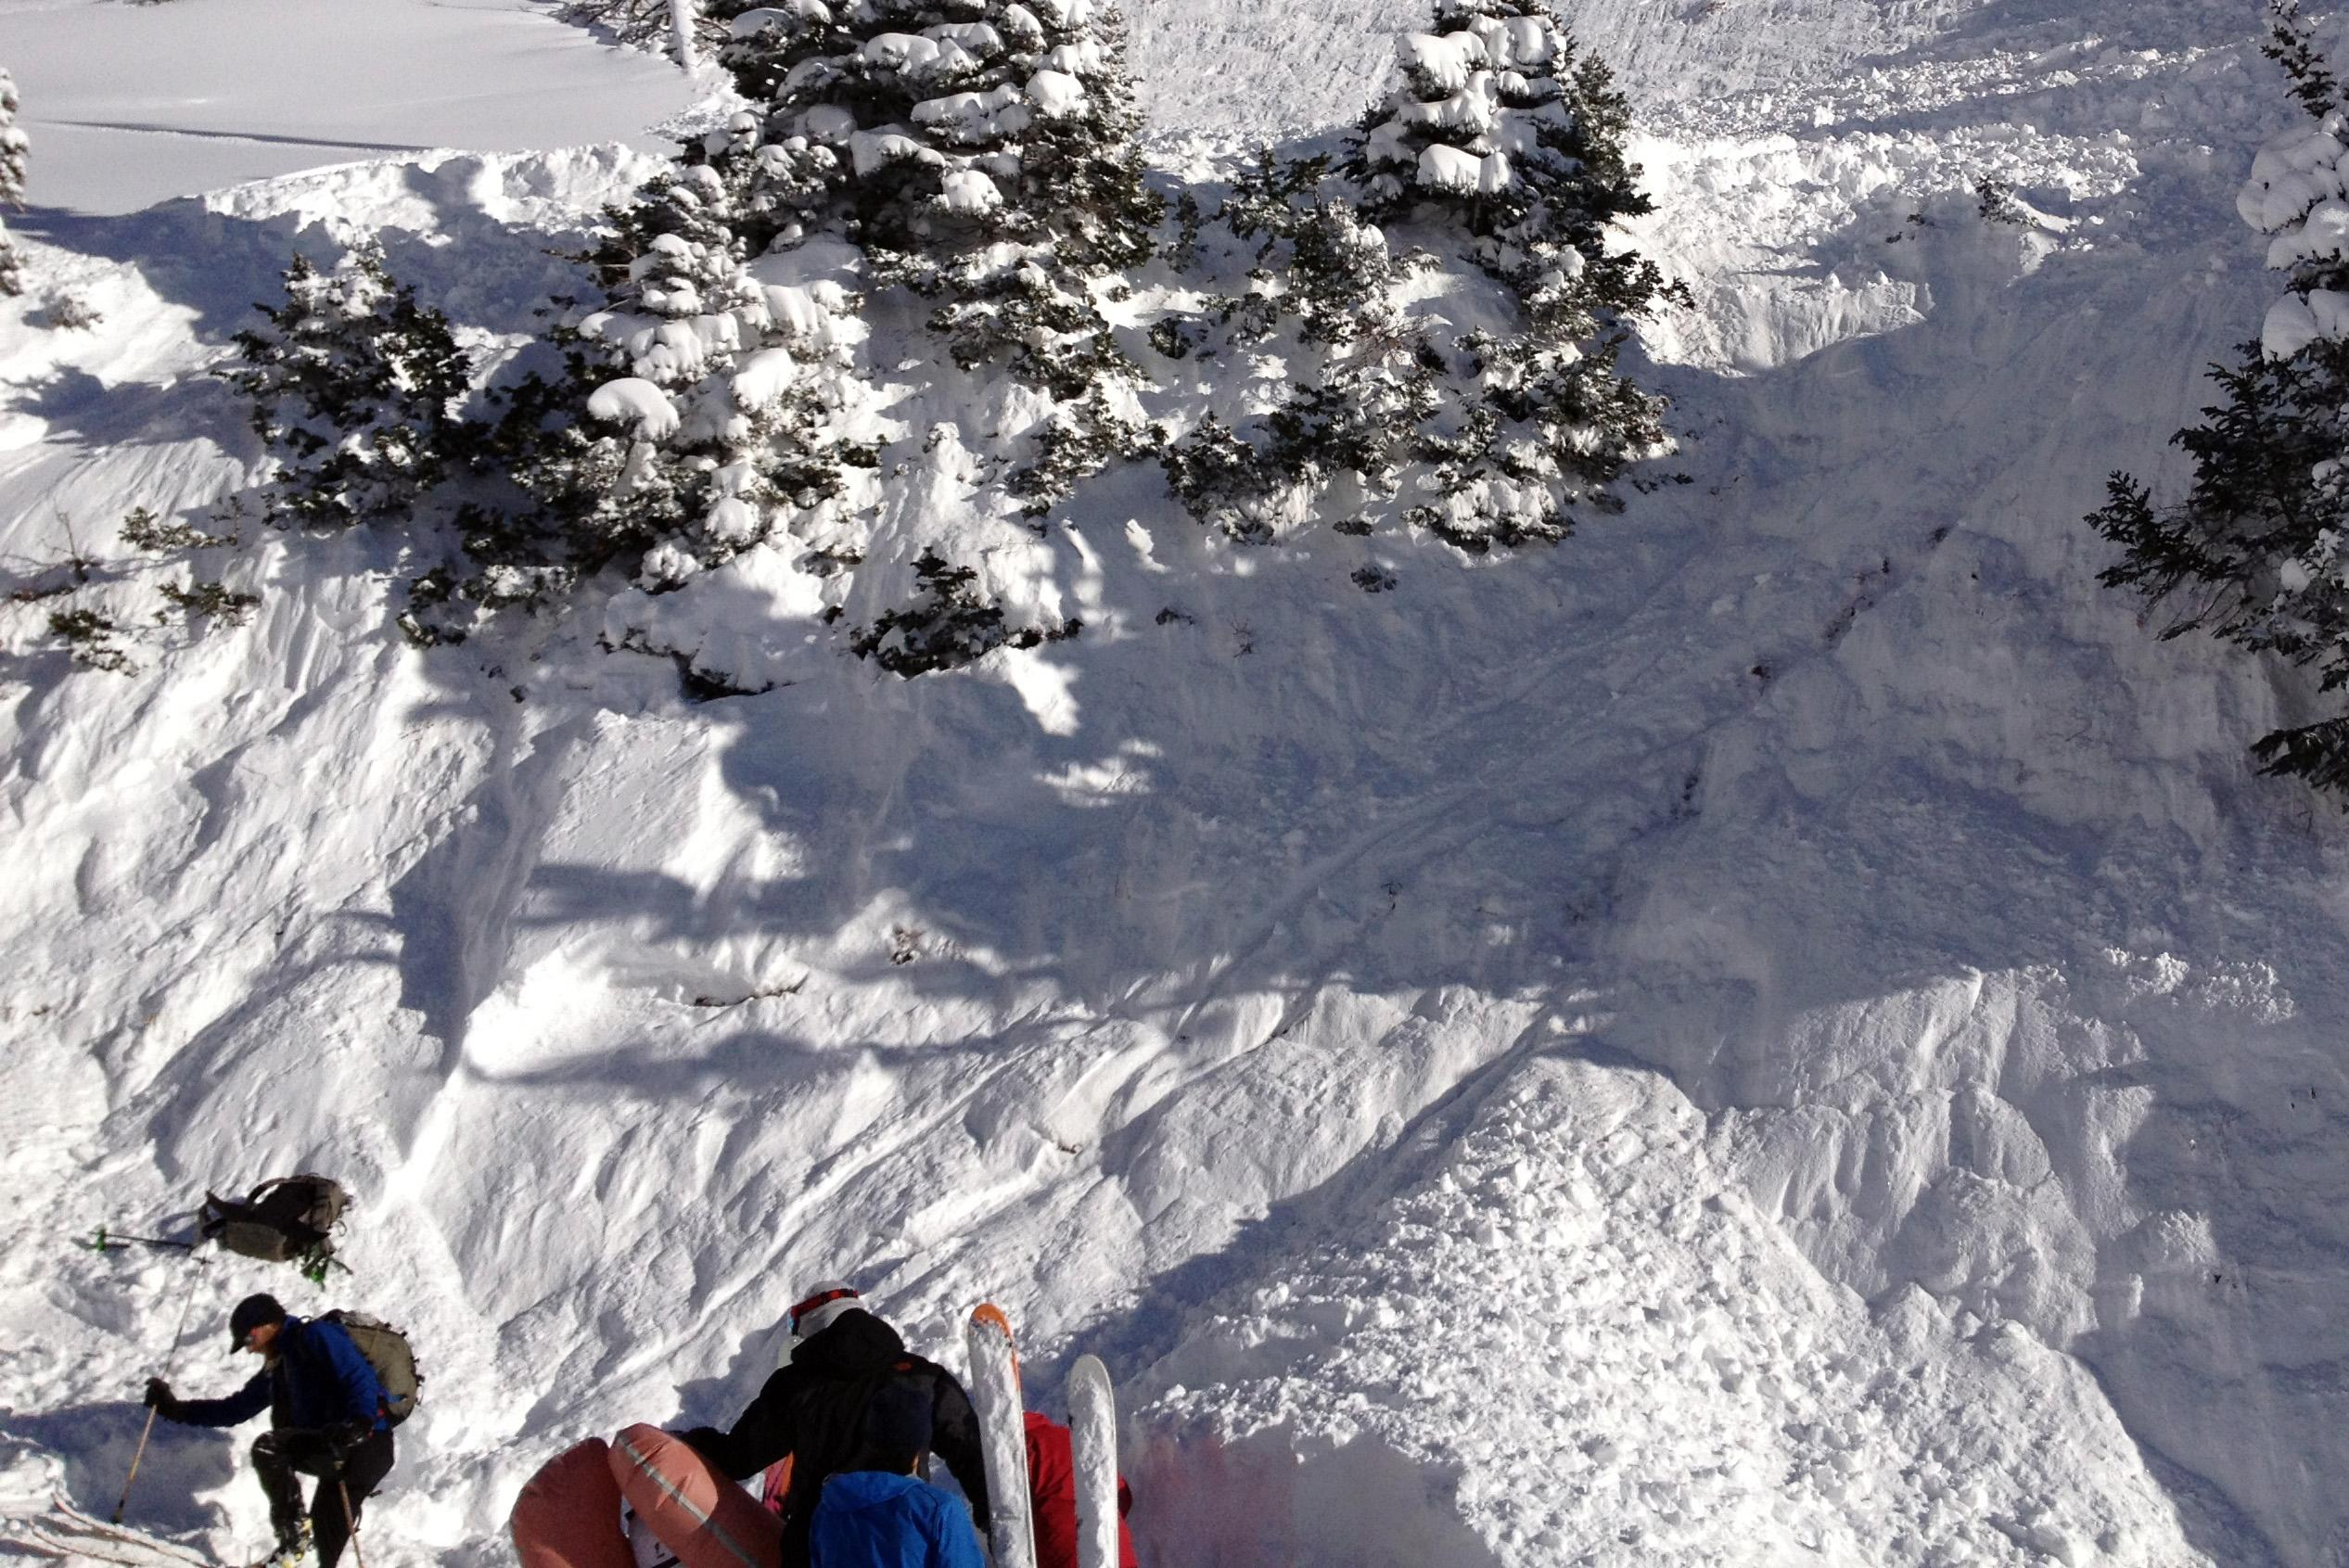 In this photo provided by Joseph Campanelli, the third in a sequence of three images, rescuers dig out a woman buried in an avalanche she triggered in a steep ravine called Grizzly Gulch, just outside the Alta ski area east of Salt Lake City, Monday, Dec. 9, 2013. The woman survived because she deployed a special air bag and other skiers were able to quickly dig her out. It was the first time this season that a person has been caught in an avalanche in the Utah. Authorities say say she could've been trapped longer under much deeper snow without the air bag. (AP Photo/Joseph Campanelli)